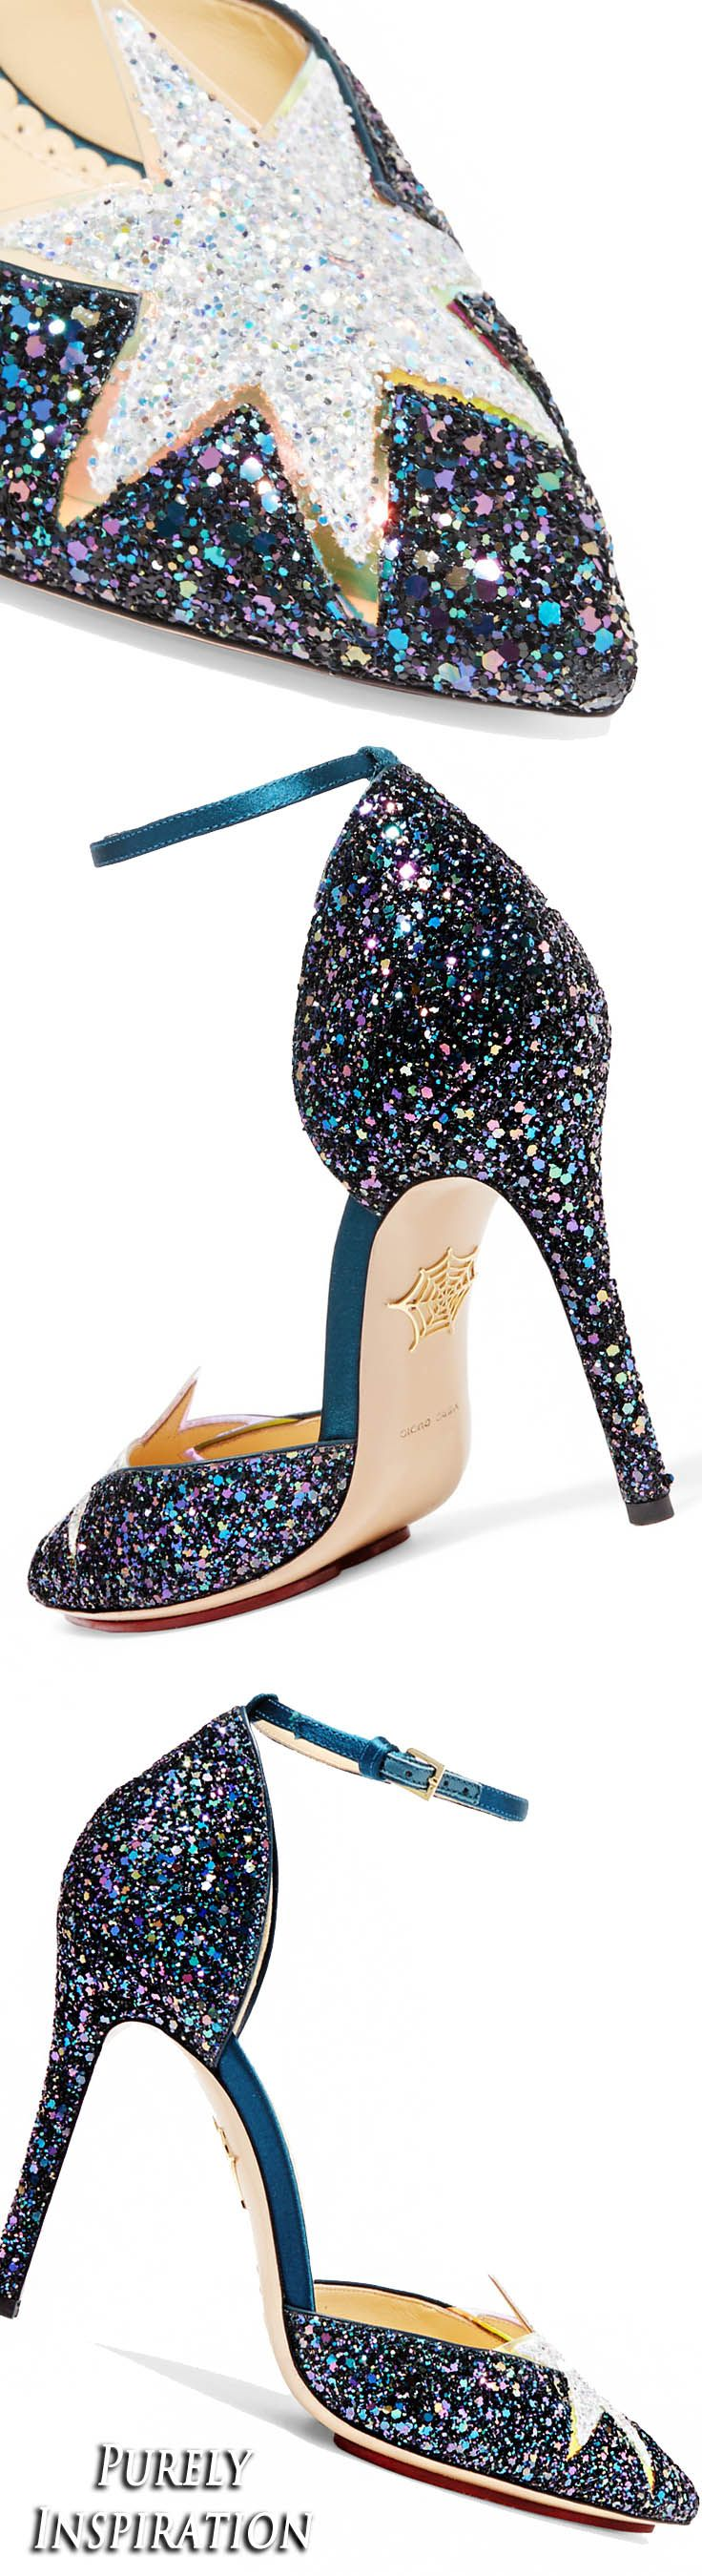 Charlotte Olympia Twilight Princess Glitter Pump | Purely Inspiration